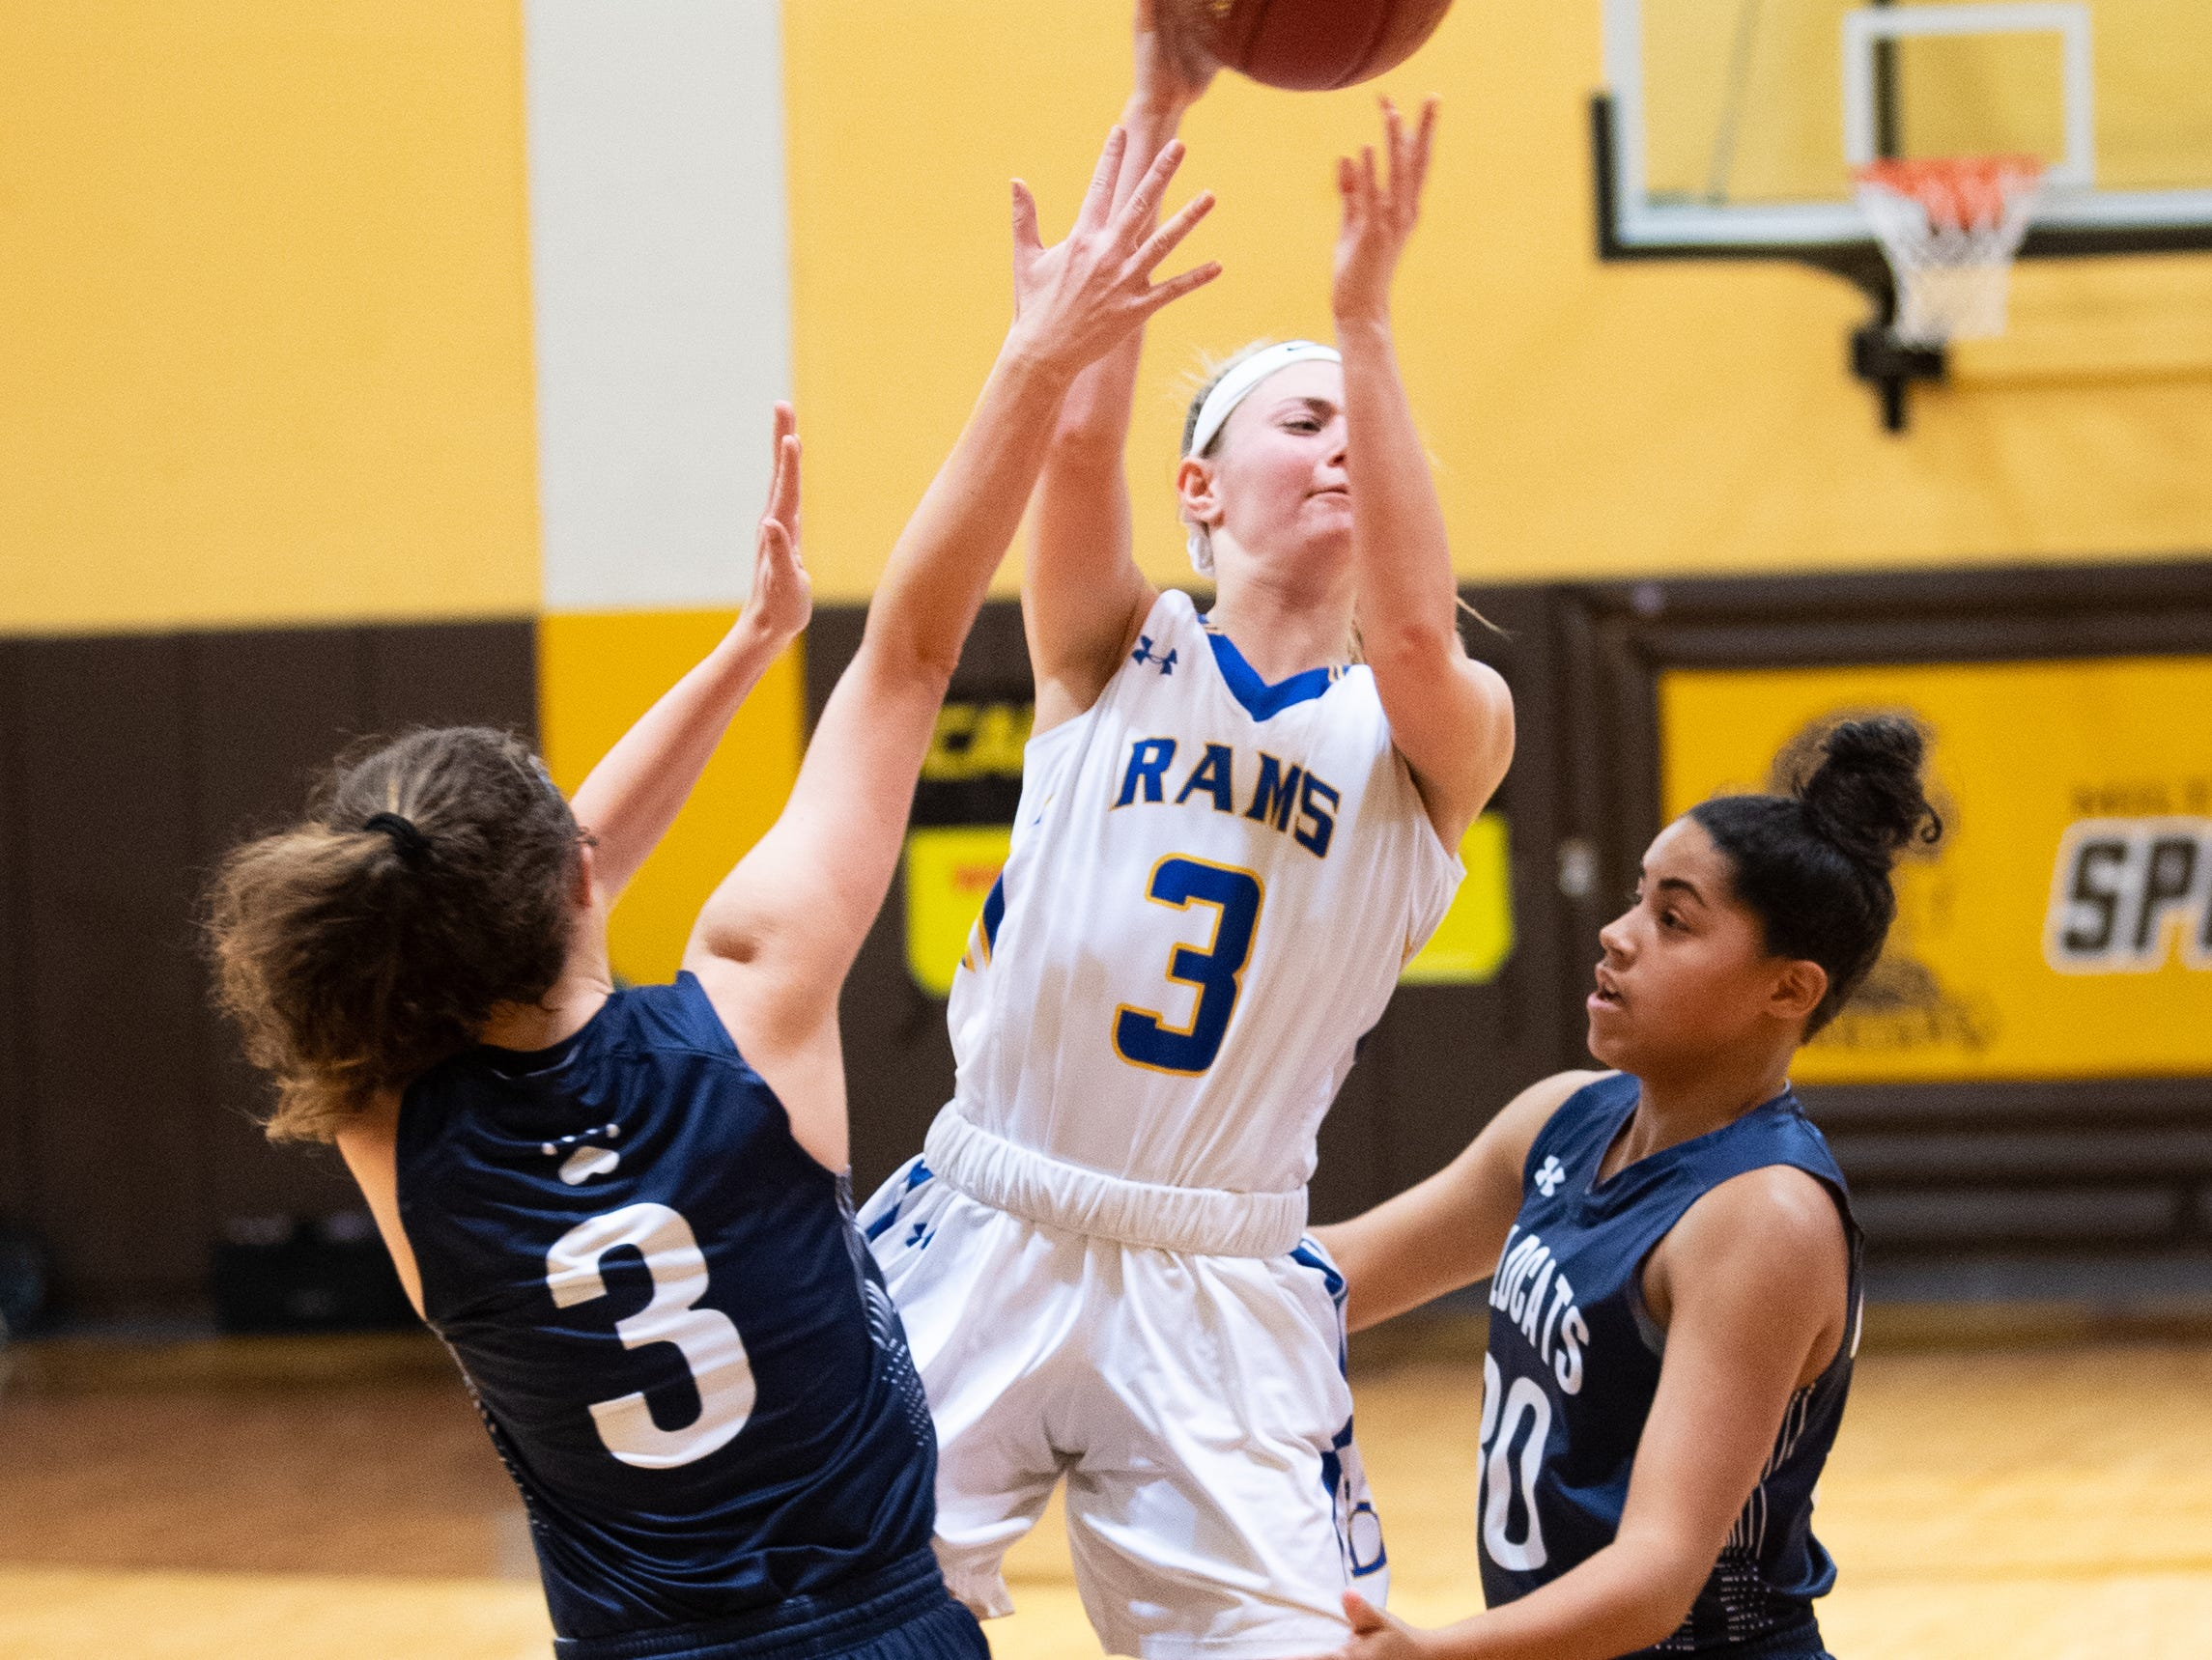 Megan Halczuk (3) passed the ball out of danger during the PIAA second round girls' basketball game between Kennard-Dale and Mifflinburg Area, March 13, 2019 at Milton Hershey School. The Rams fell to the Wildcats 51 to 45.